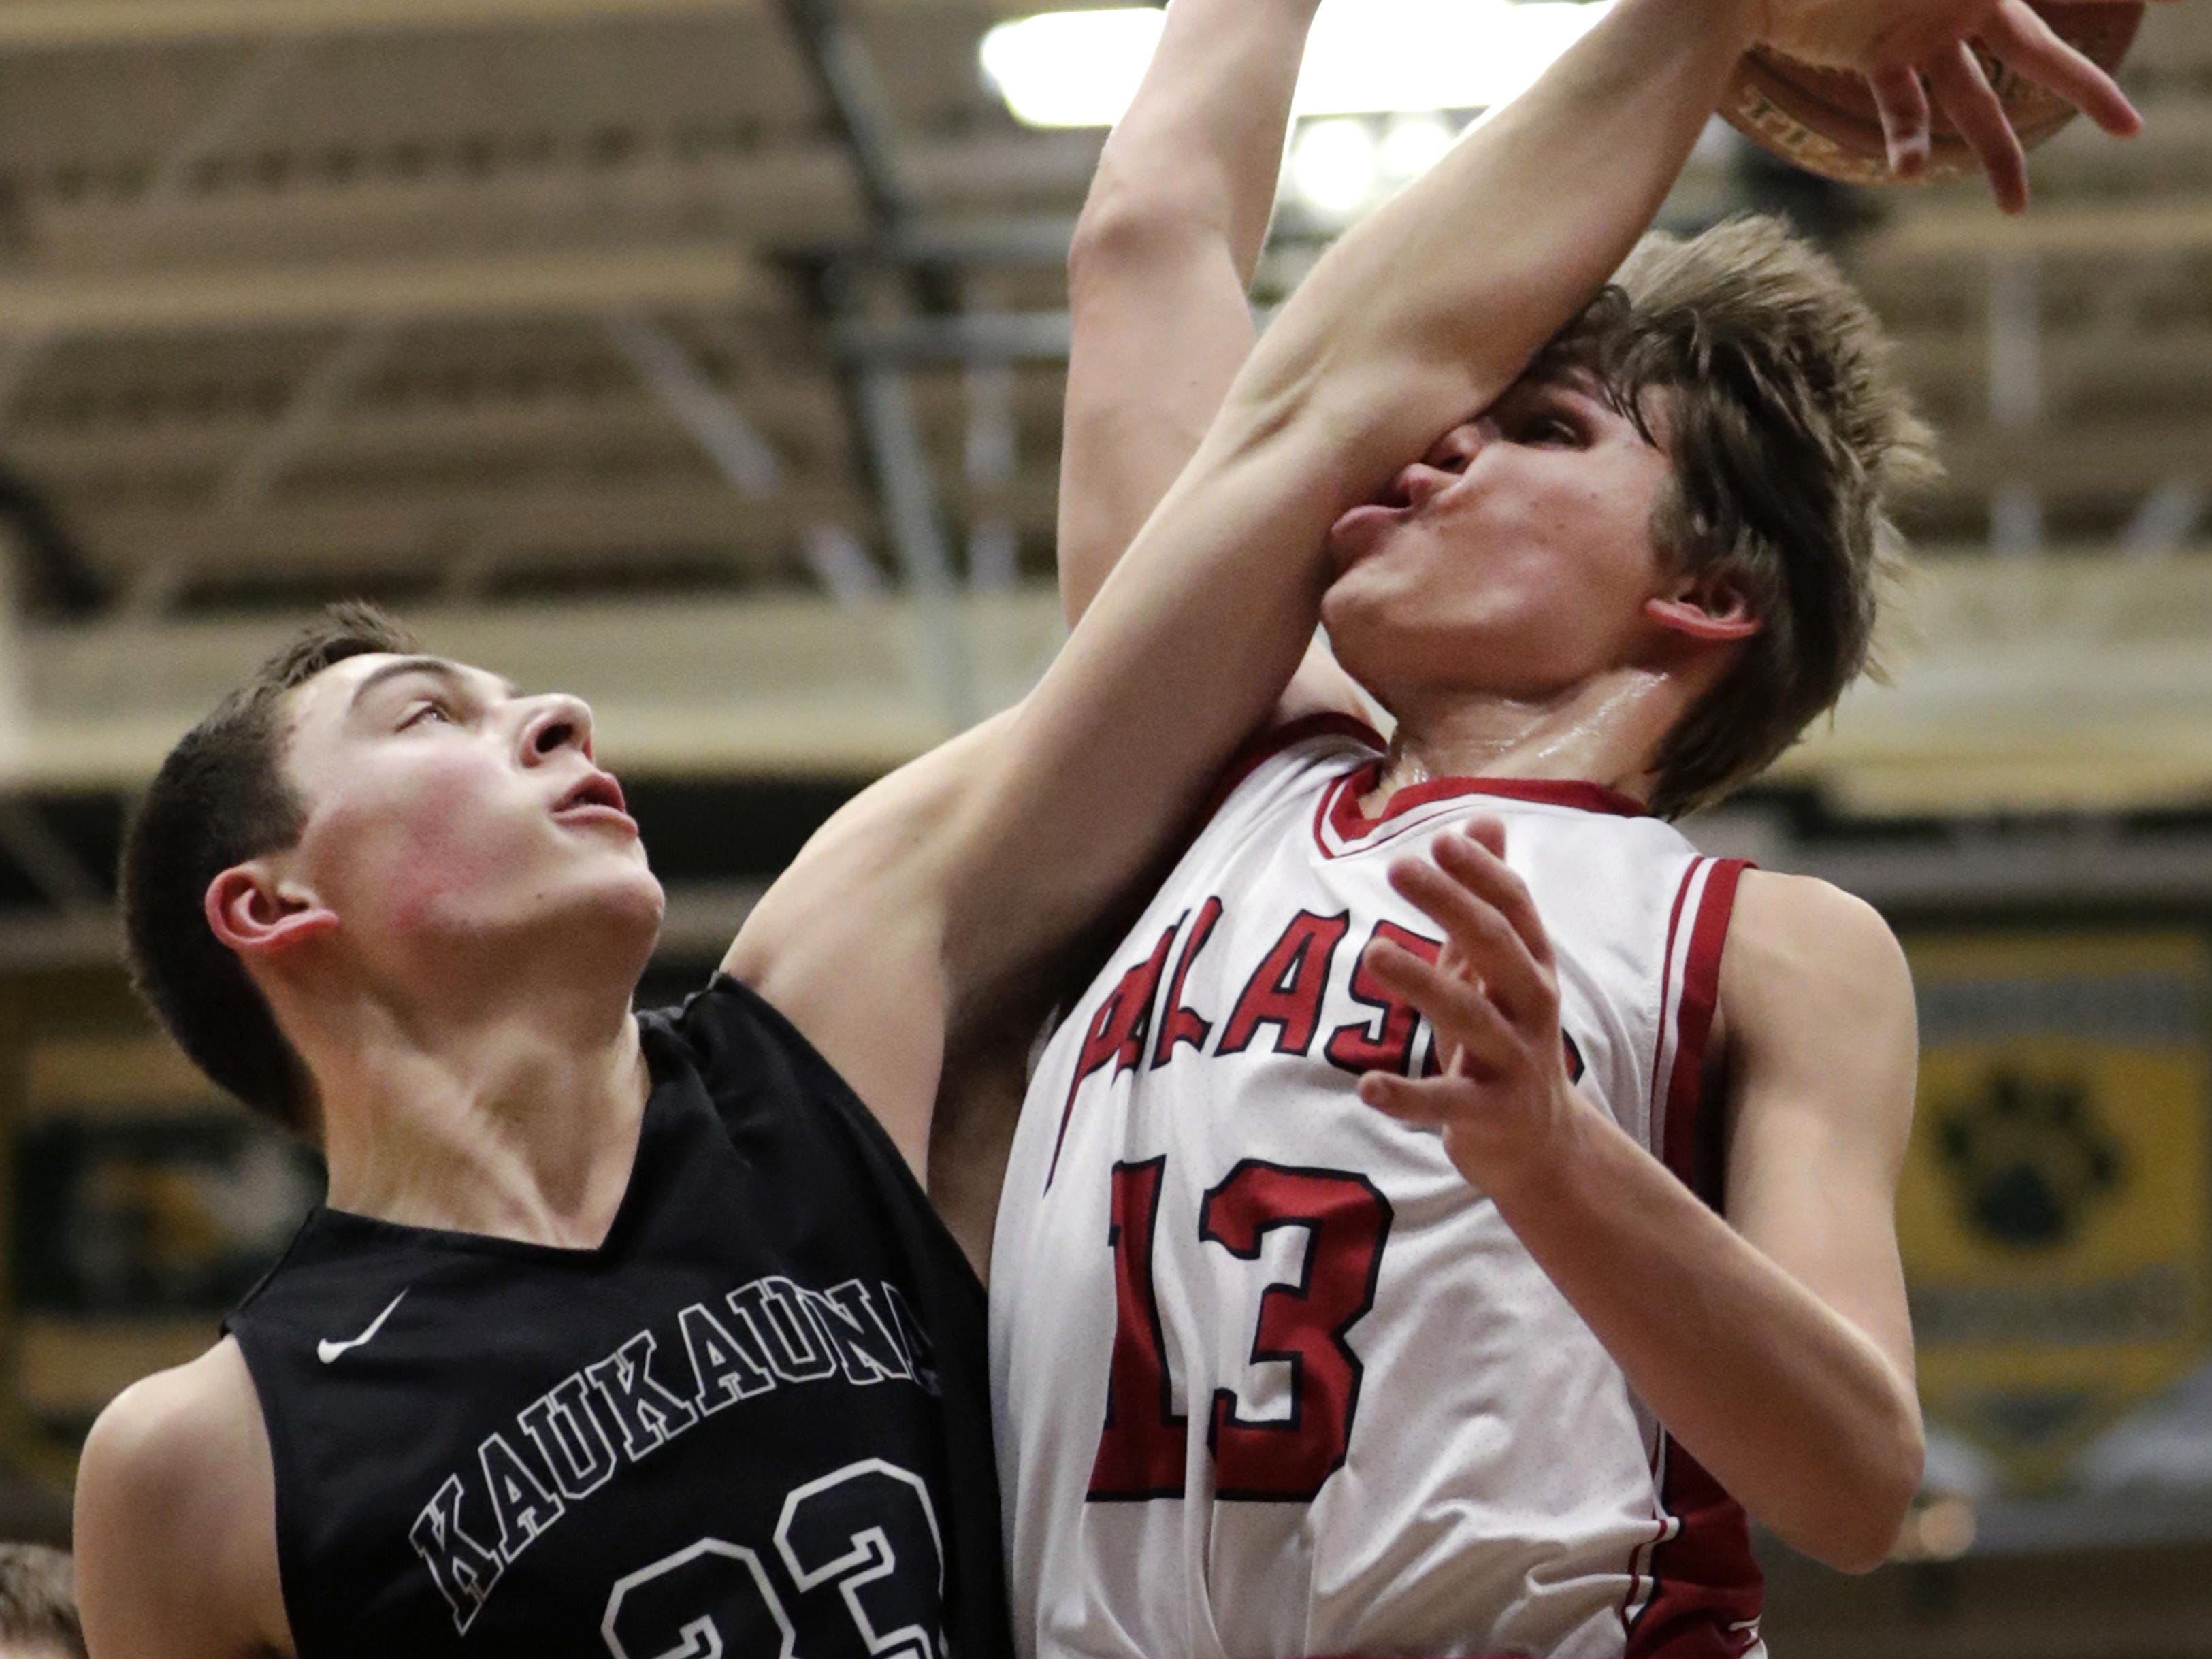 Kaukauna's Luke Eiting nails Pulaski's Trevor Stiede on a block attempt during Thursday's WIAA Division 2 boys sectional semifinal game at Ashwaubenon.